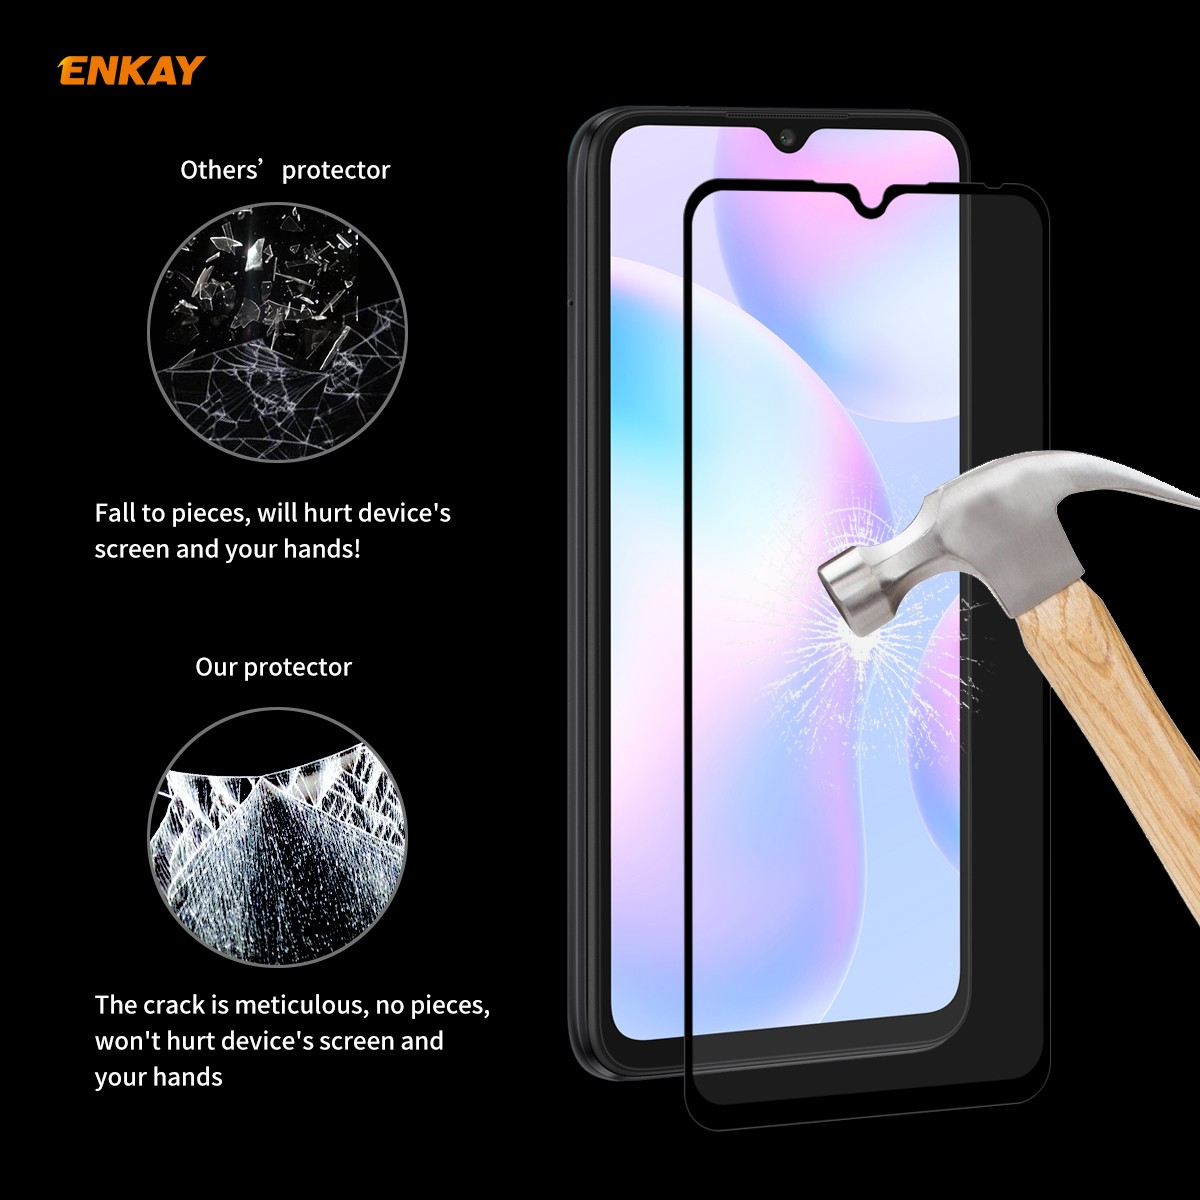 Enkay Straw Hat Prince Screen Protector for Huawei P40 Lite/Huawei P40/Redmi 9/9A/9C/Redmi 10X 5G/Xiaomi 10 Lite/Redmi 10X 4G/Redmi Note 9 - Black for Redmi 9 / 9A / 9C